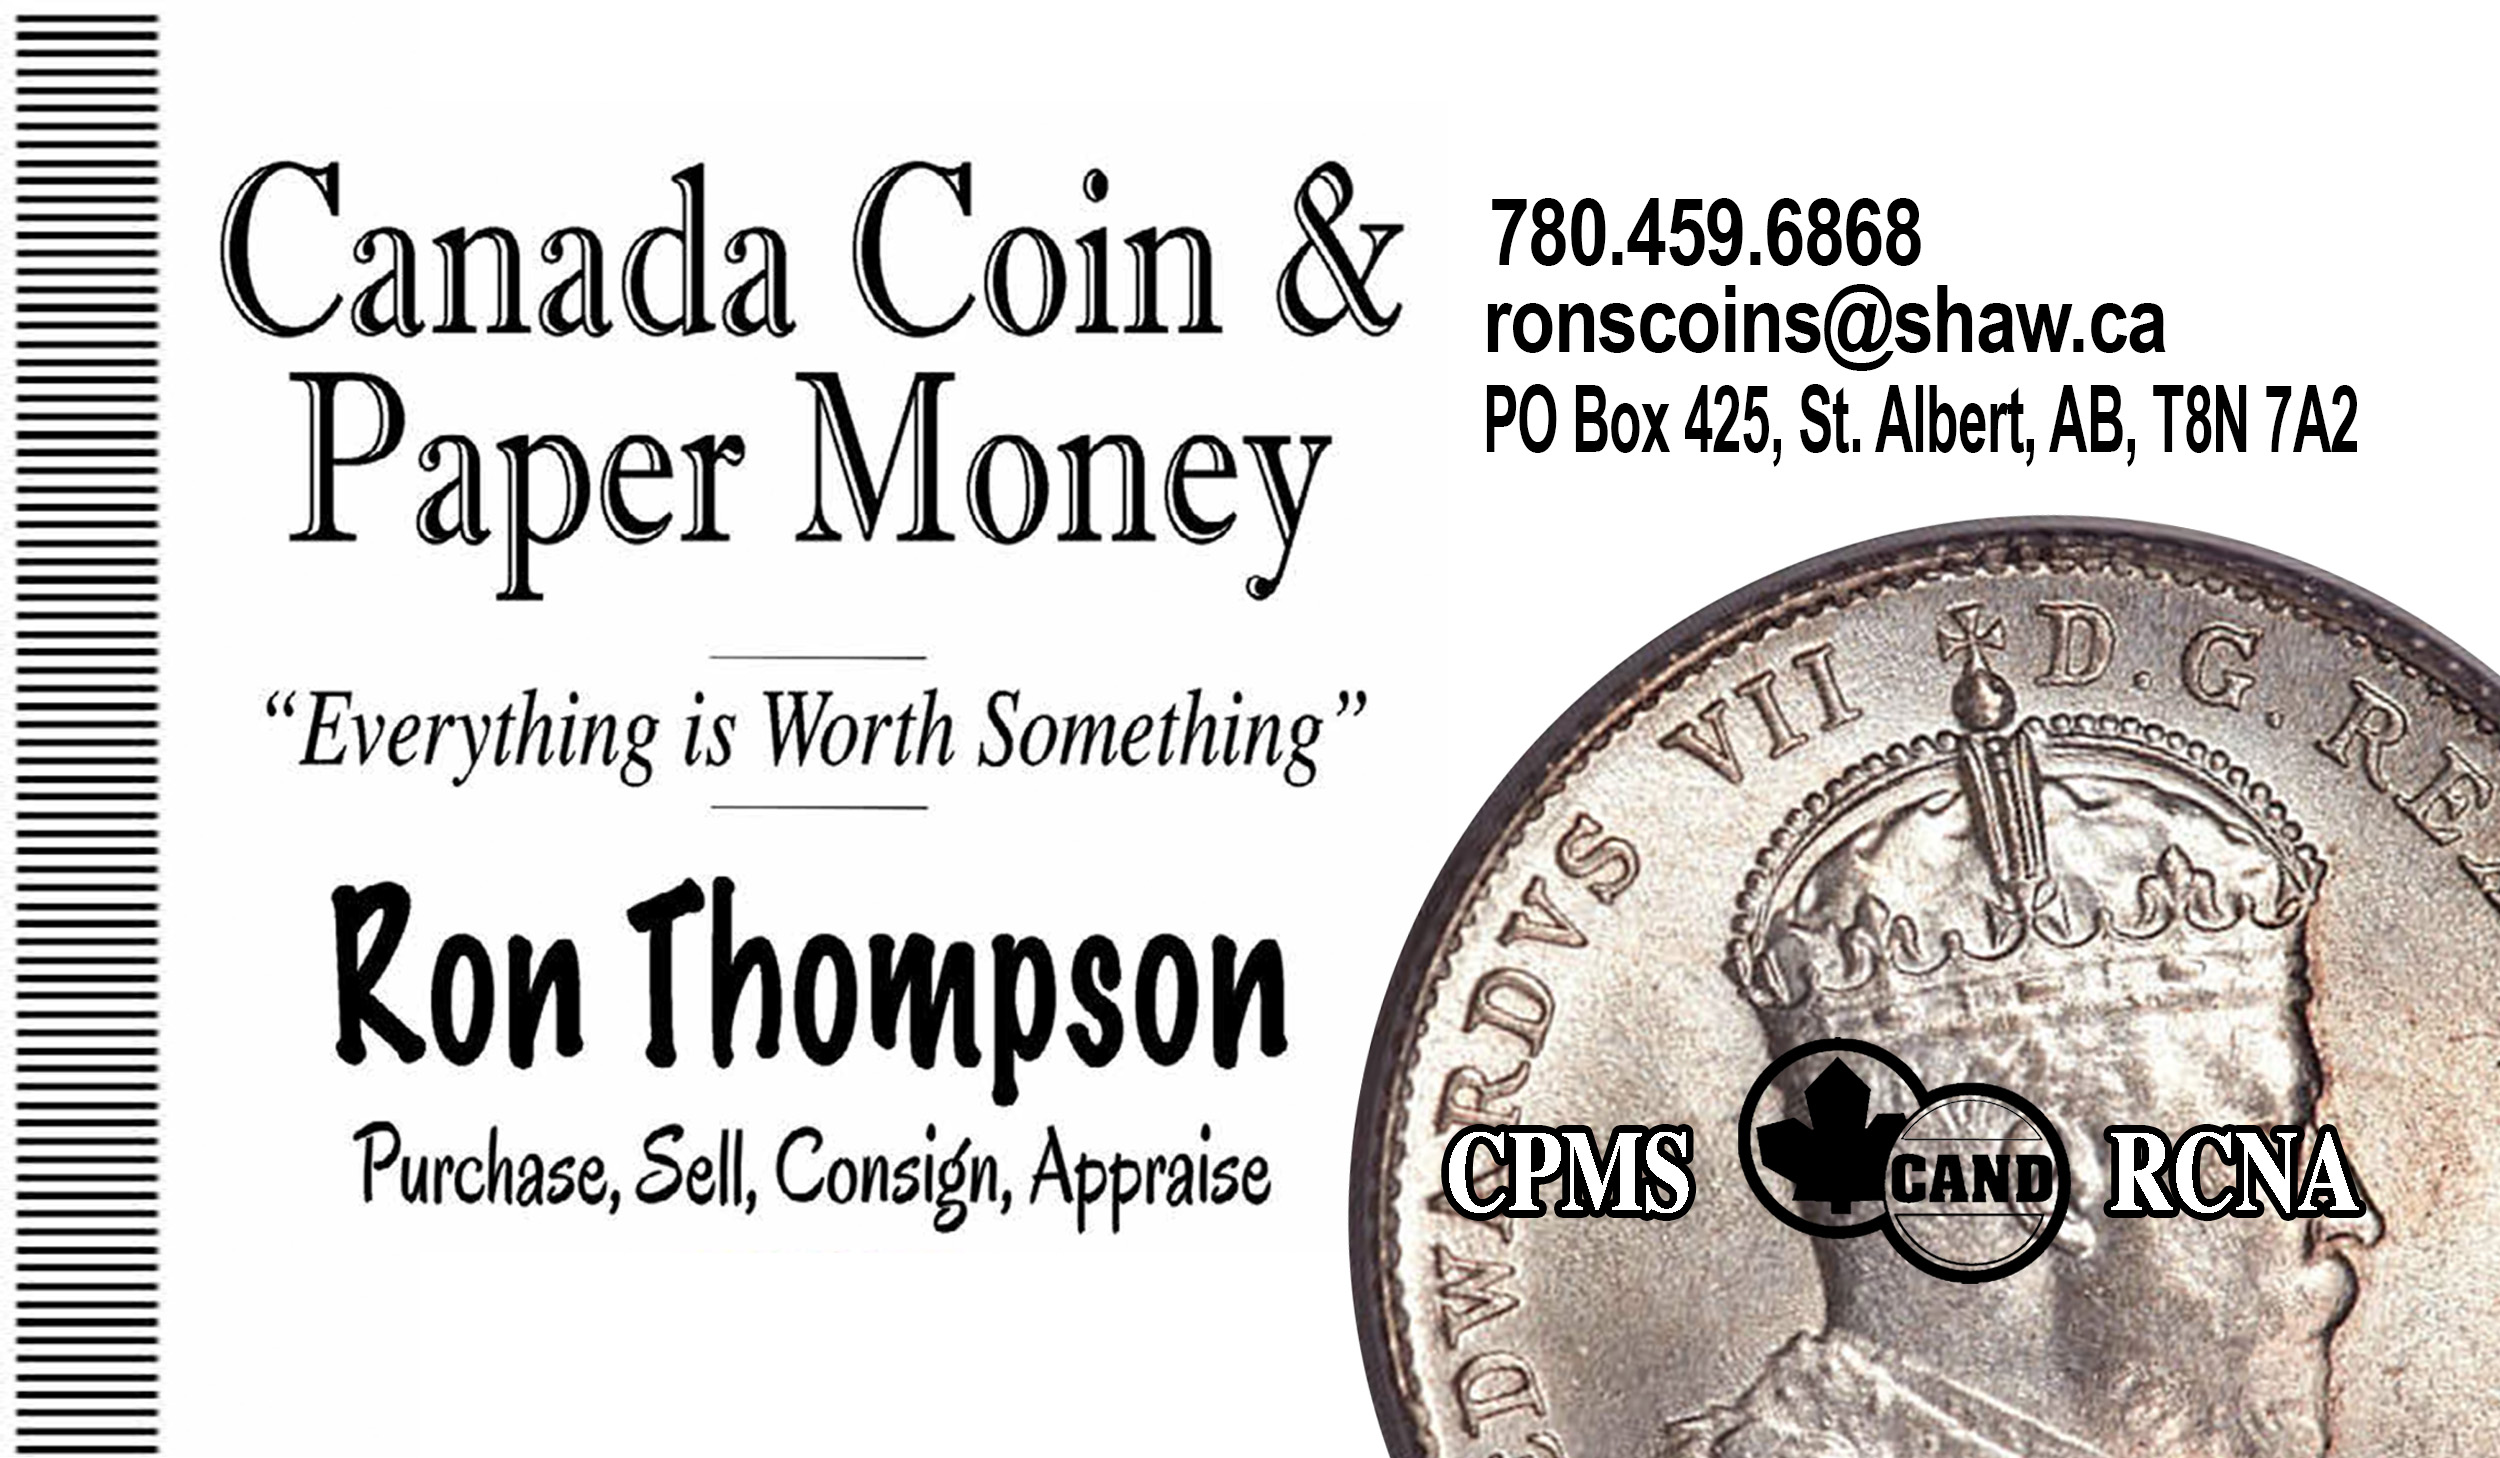 Canadian Coin & Paper Money